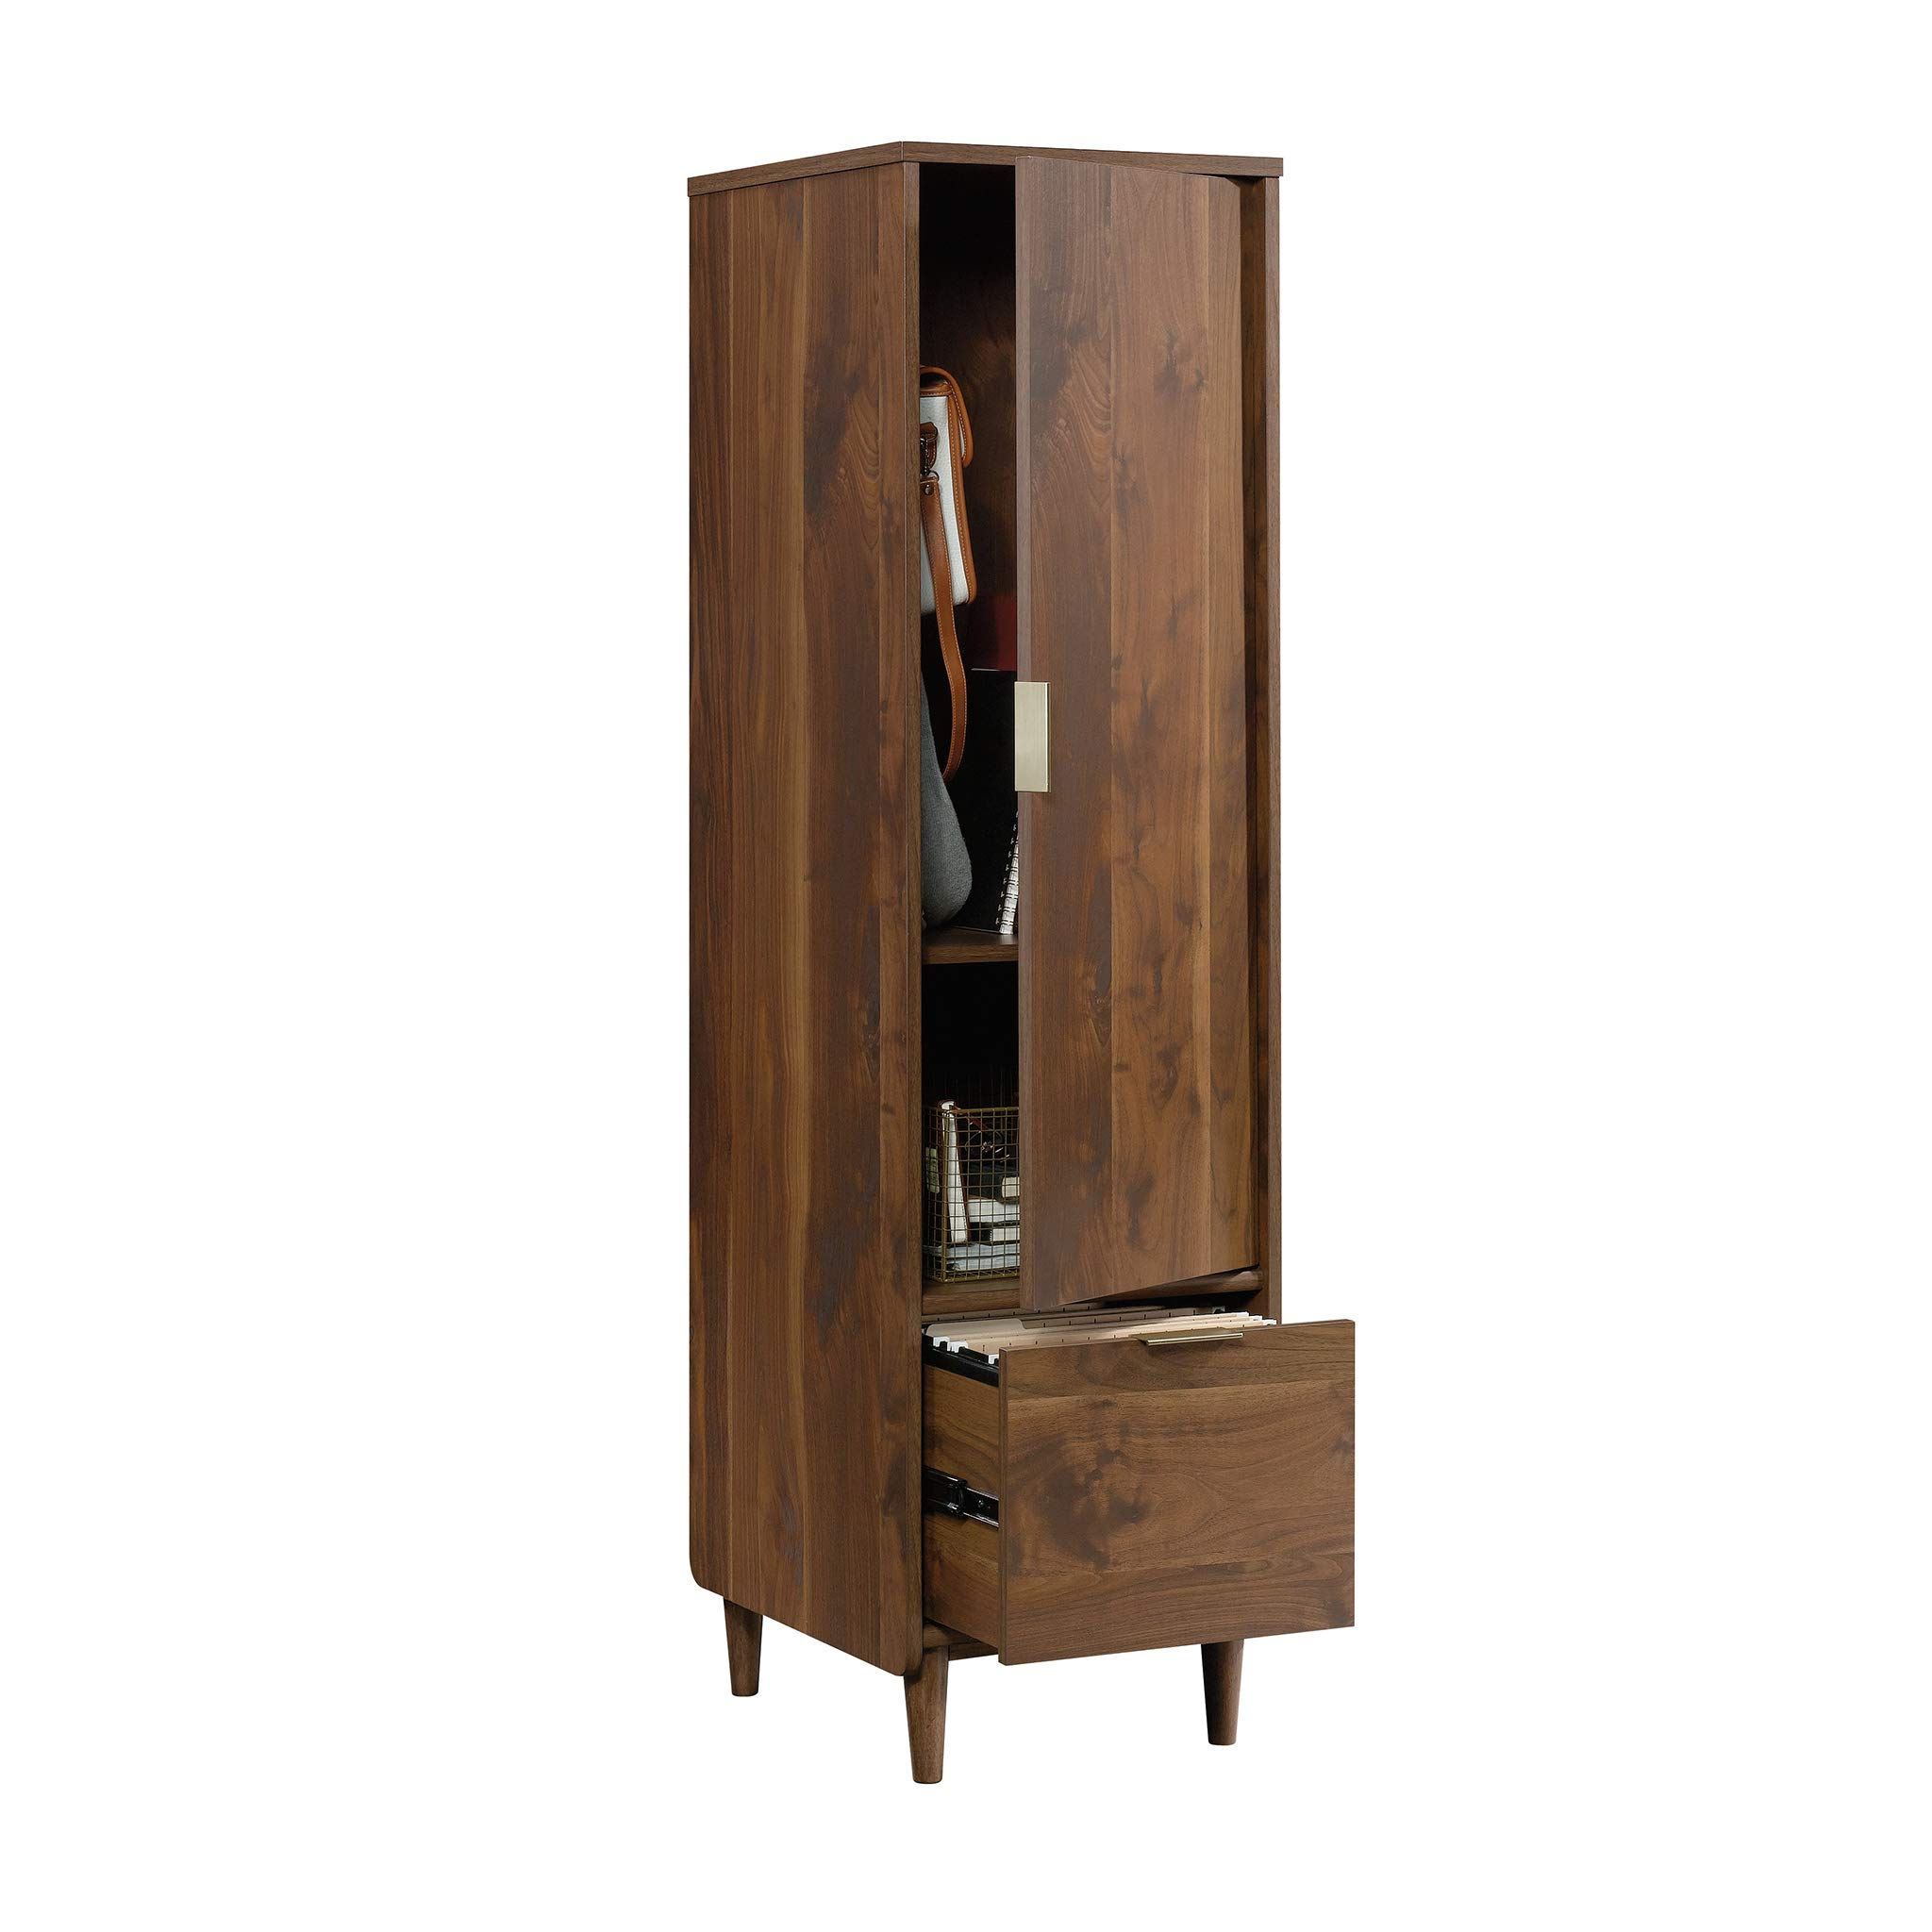 Sauder 421318 Clifford Place Storage Cabinet with File, L: 15.51'' x W: 18.50'' x H: 58.27'', Grand Walnut Finish by Sauder (Image #10)